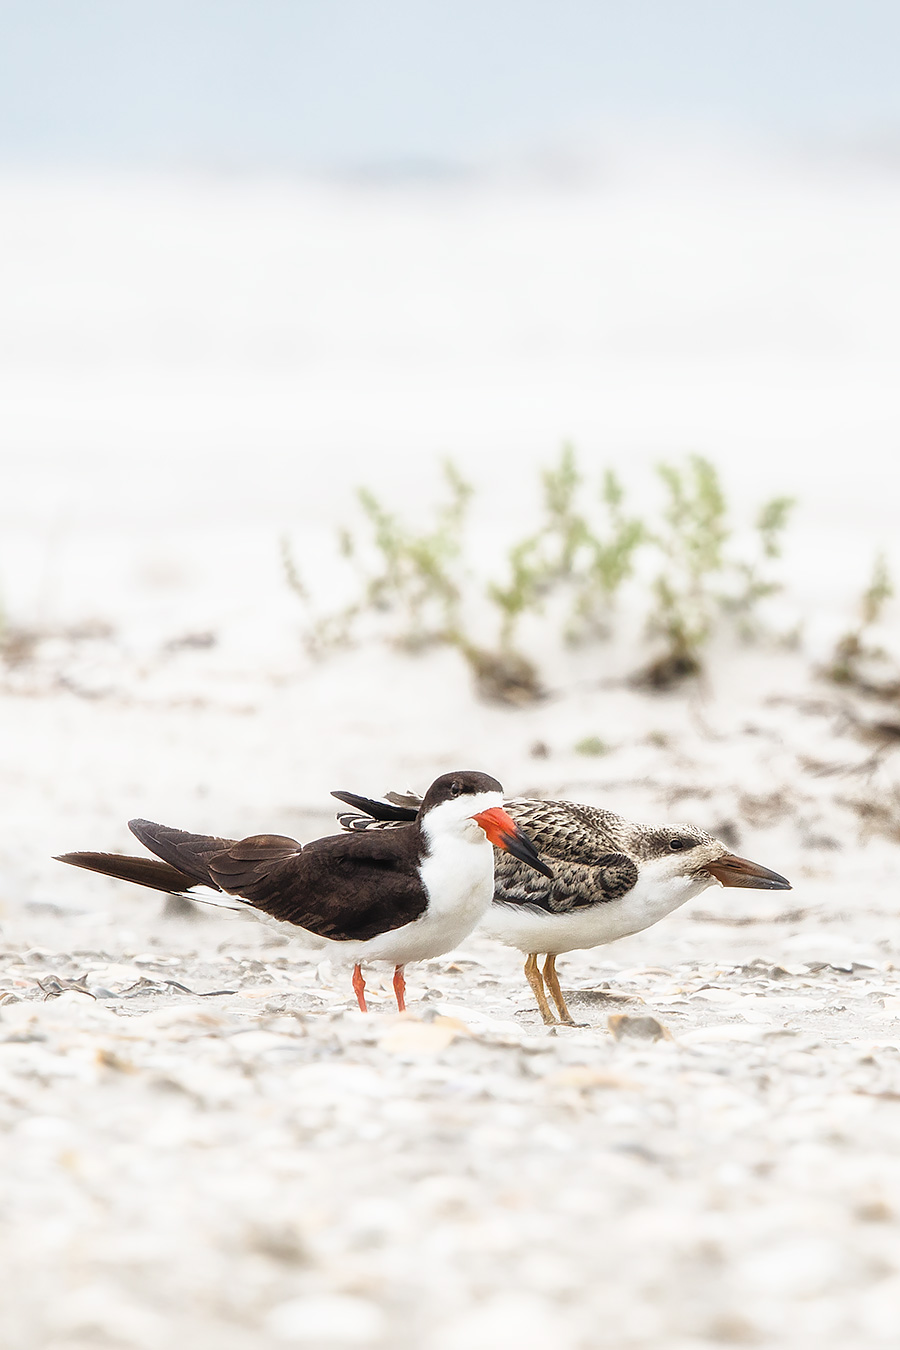 A large number of Black Skimmers are amassing in Barnegat Bay, but poor Momma is stuck, pinned down waiting for Sprinty McNugget to take that first flight. It appears that SNugz' siblings have moved on and joined the big group.